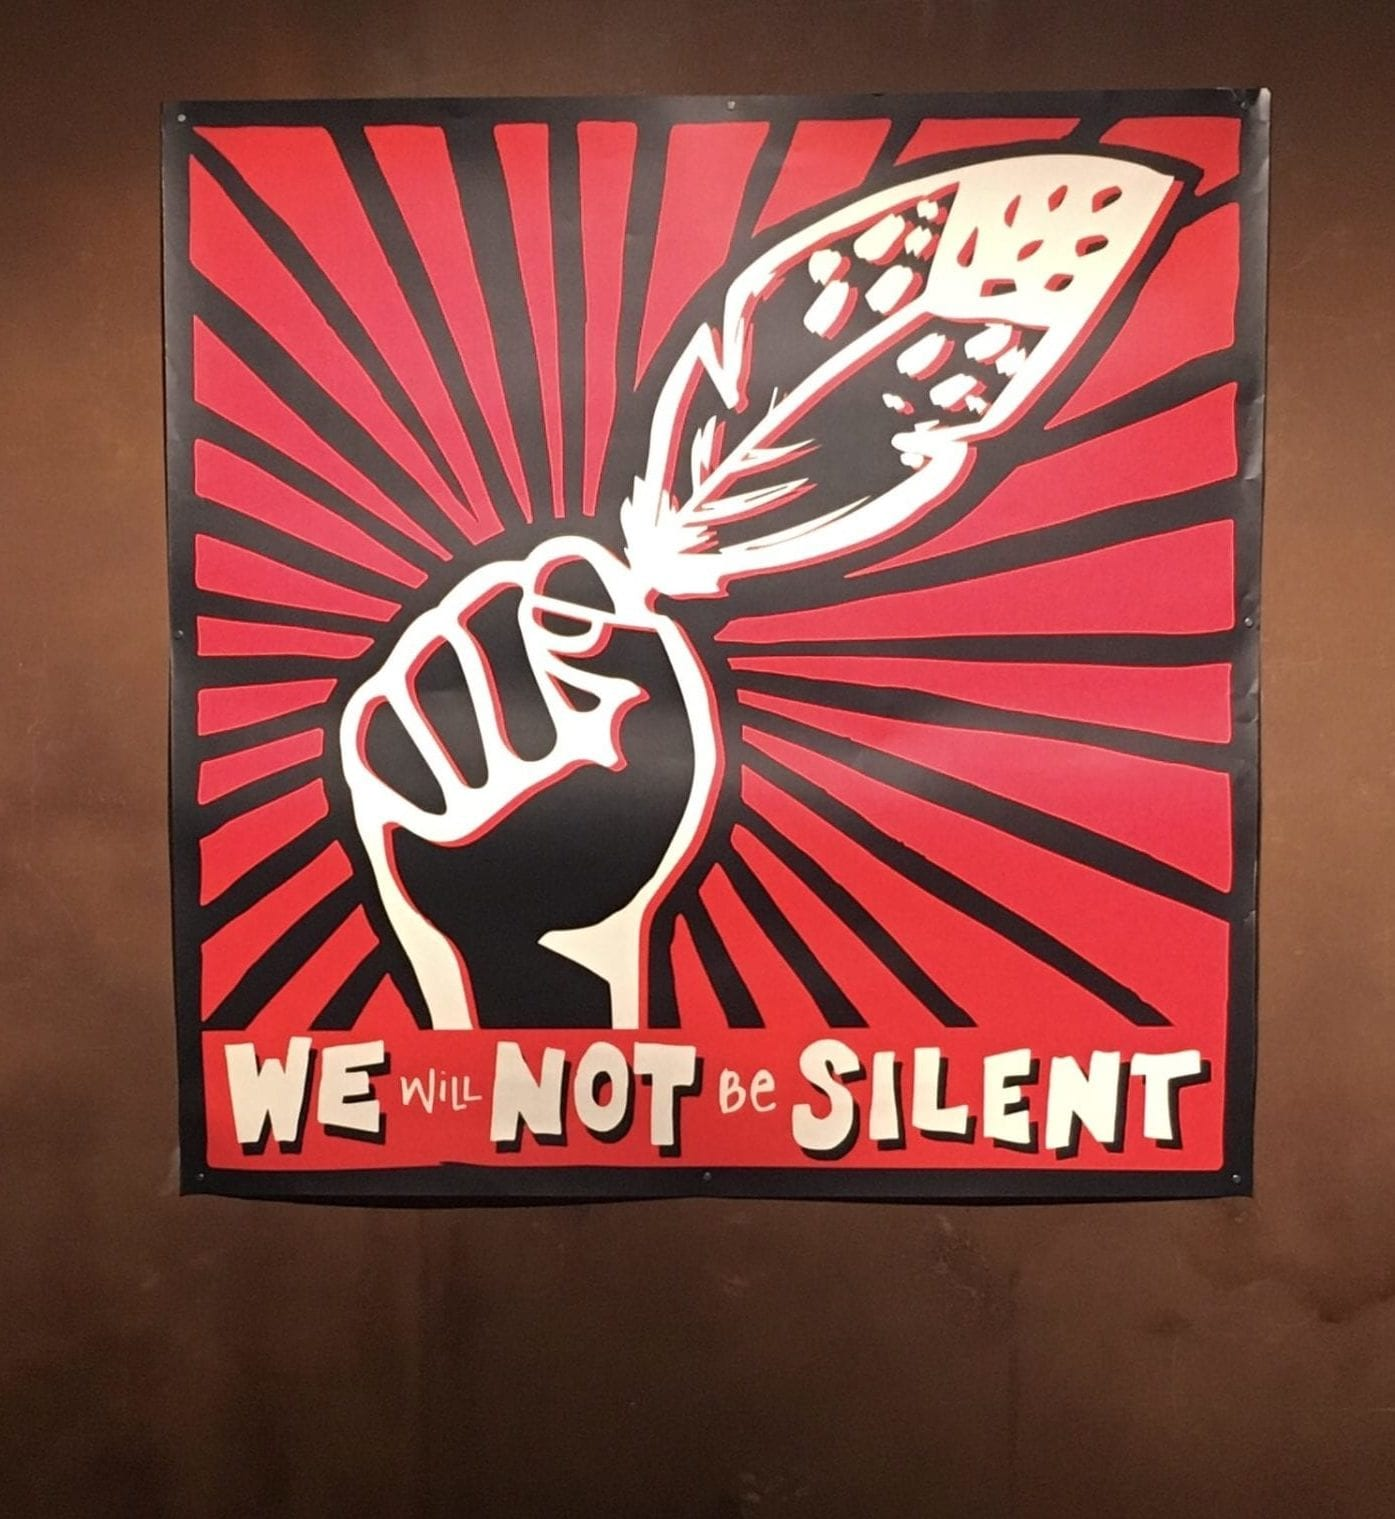 "A black and red poster that features a hand raised in protest, holding a feather towards the top right corner. The hand is black and elements of the feather are black. Extending from the hand and feather in a radial design are black lines of different thicknesses. A black frame extends around the poster. In white the words ""We Will Not Be Silent"" are written on the bottom edge of the poster."